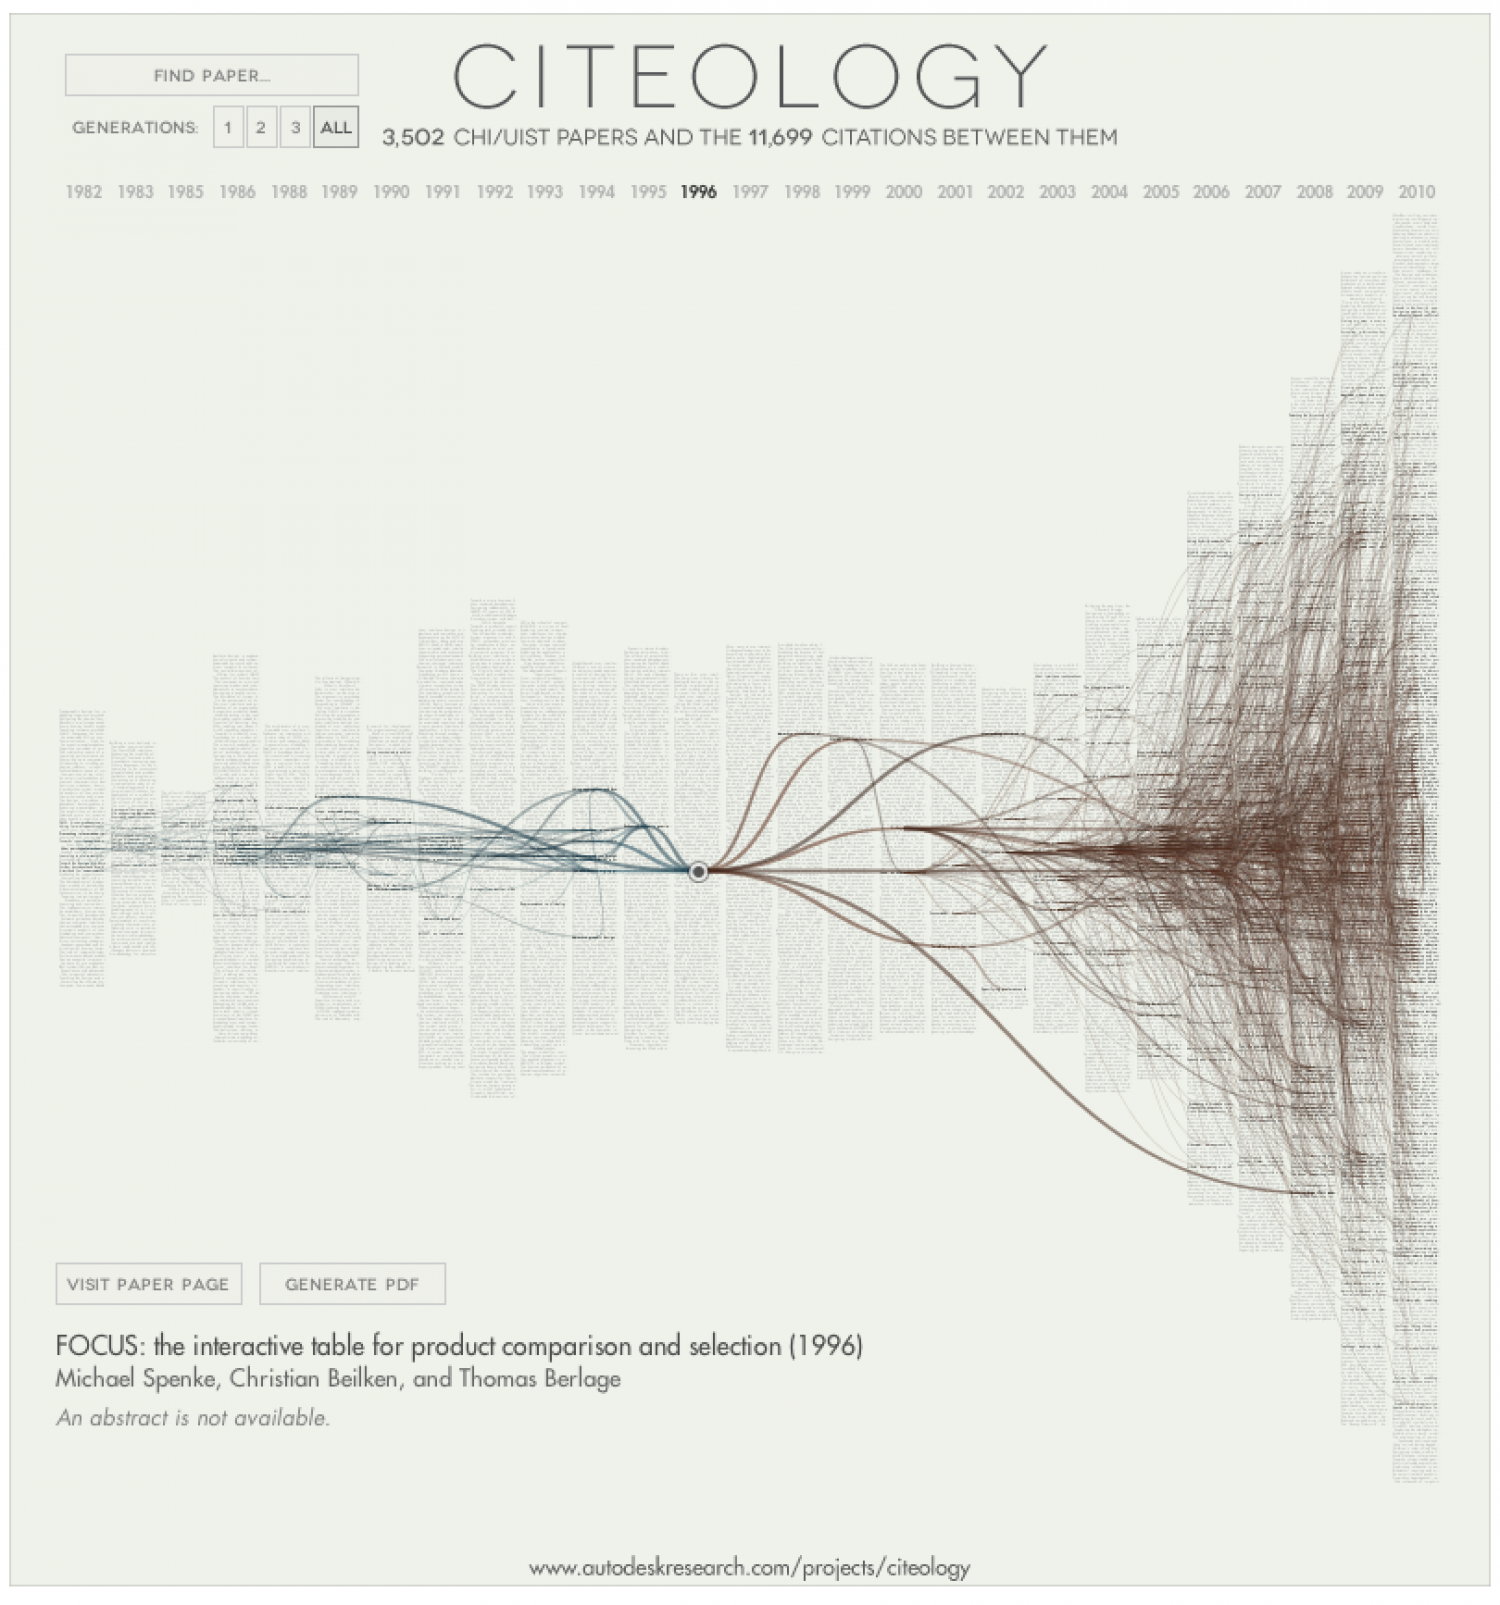 Citeology Infographic